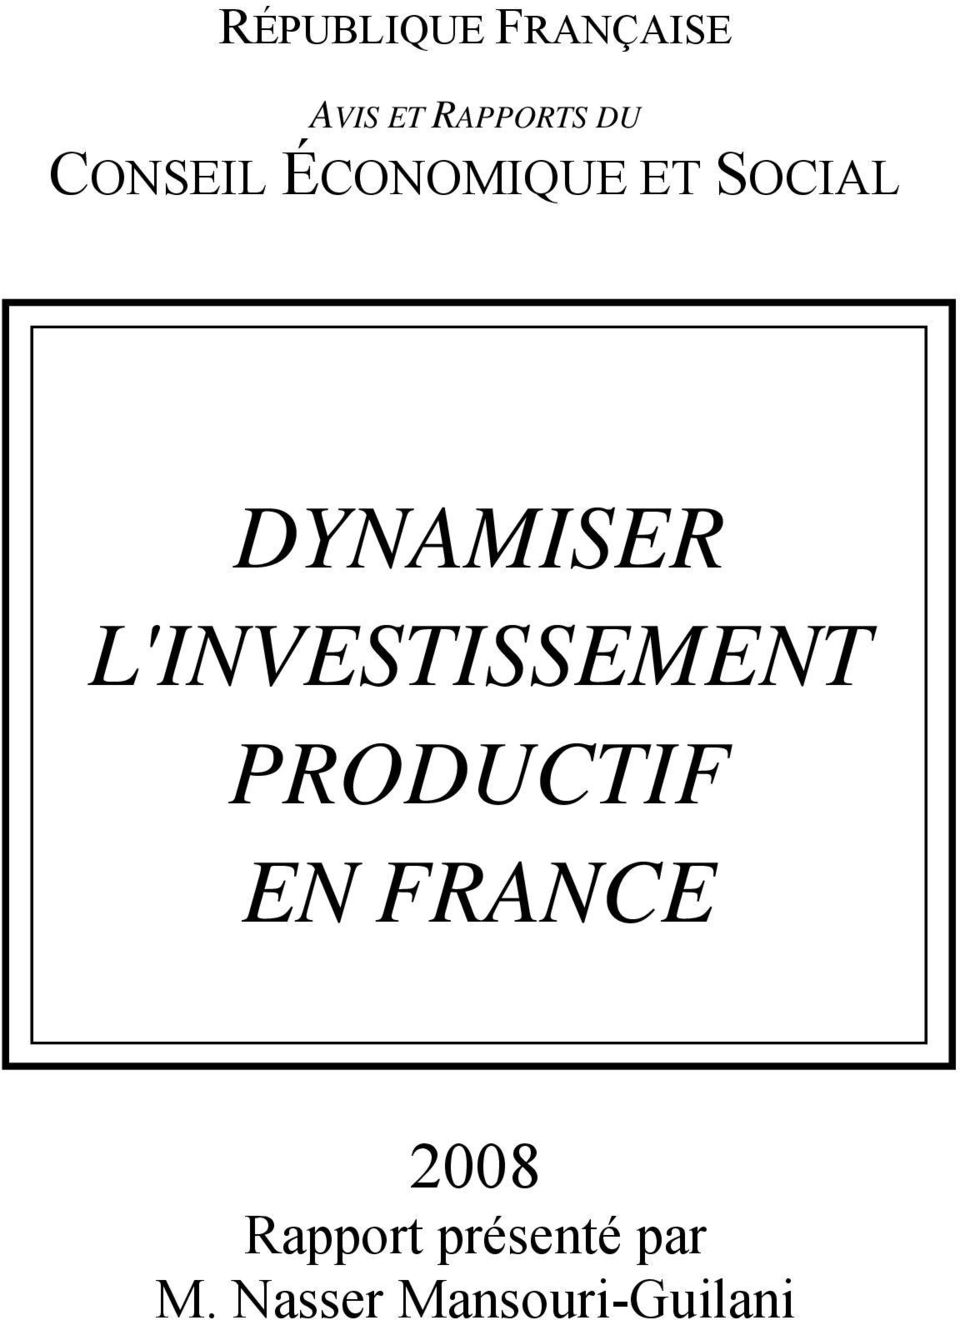 L'INVESTISSEMENT PRODUCTIF EN FRANCE 2008